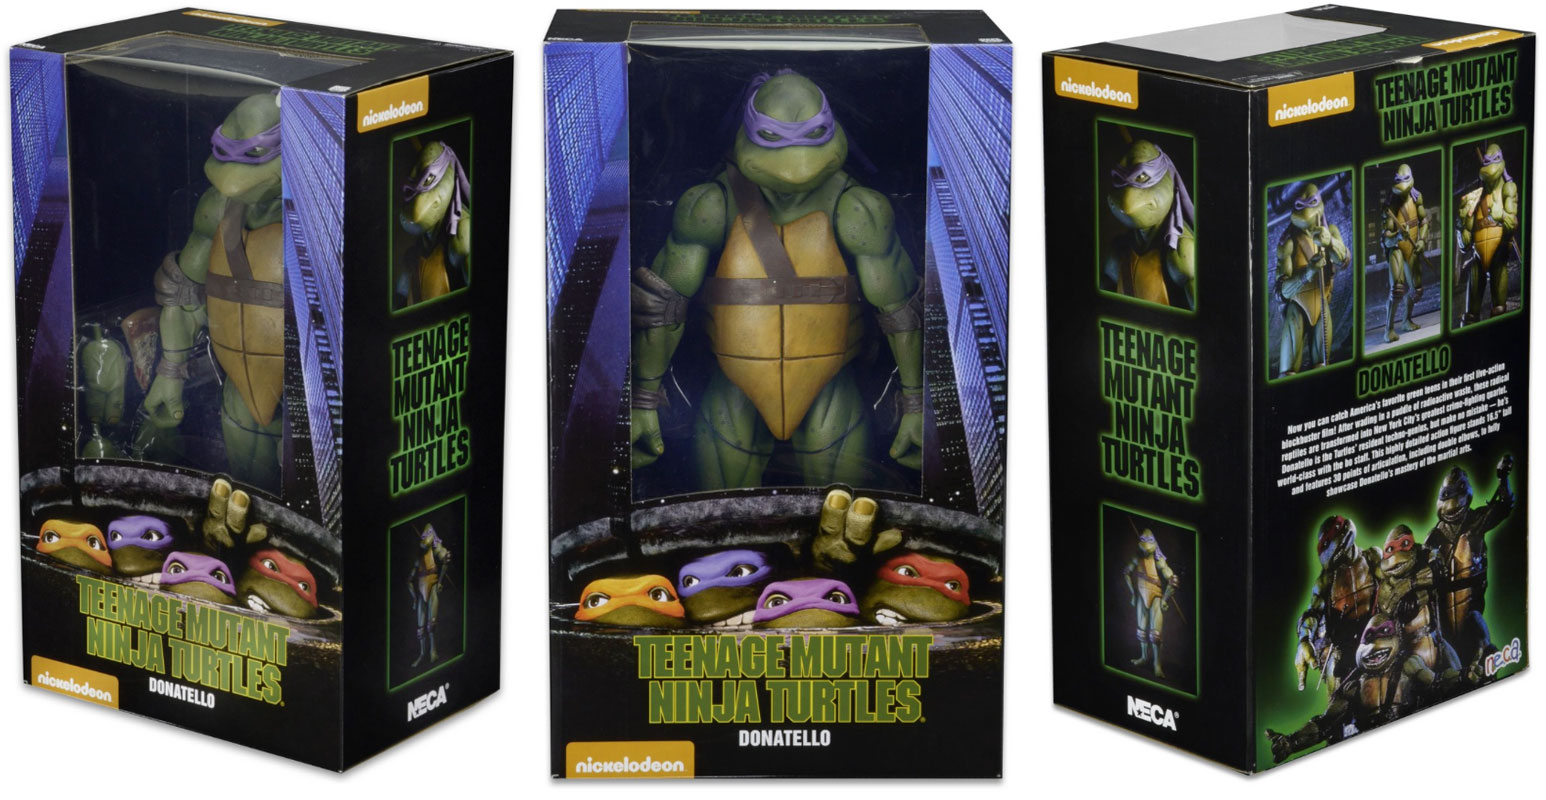 neca-tmnt-action-figure-packaging